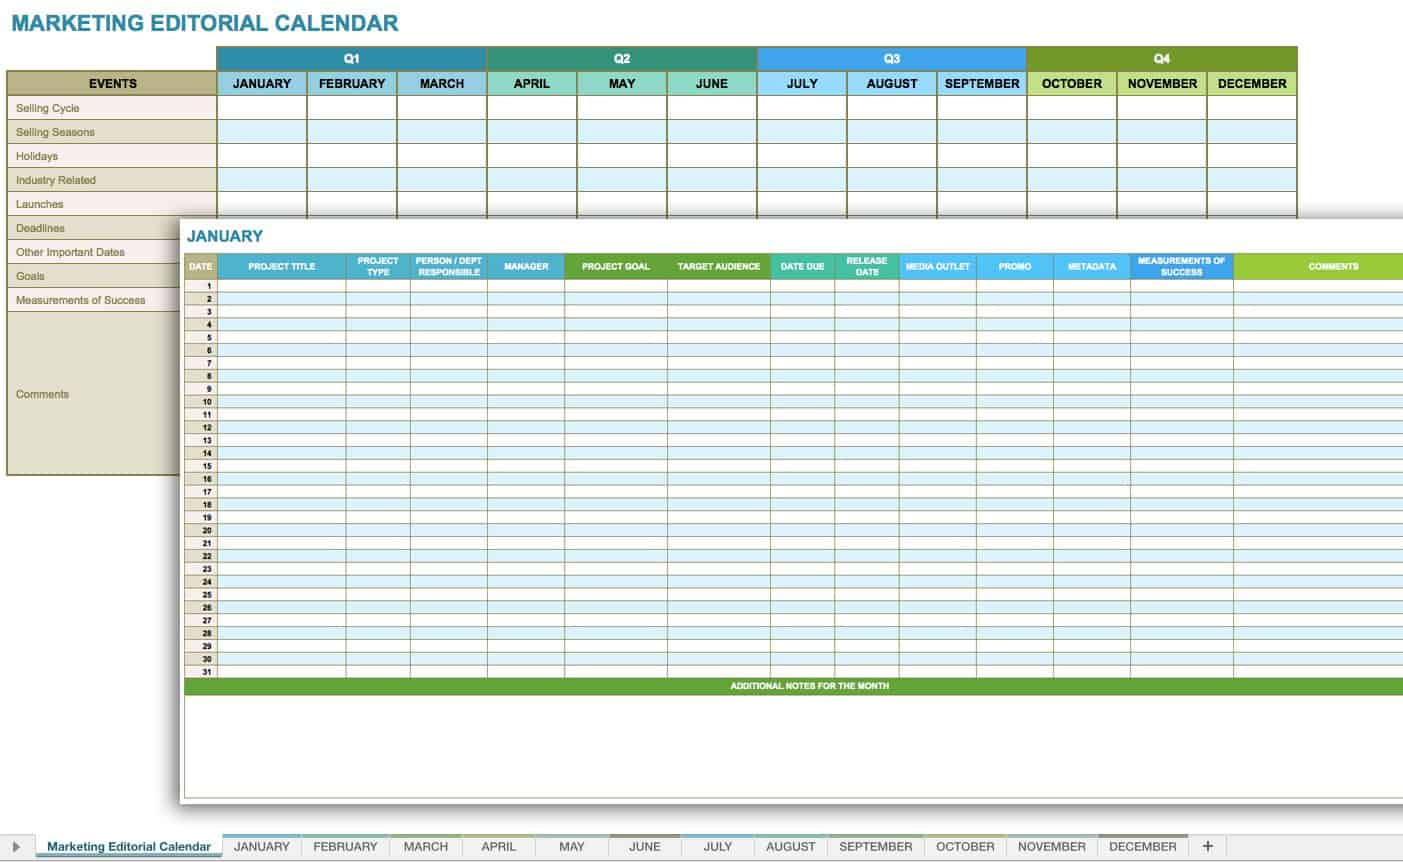 MarketingEditorialCalendar_0  Daily Action Plan Template